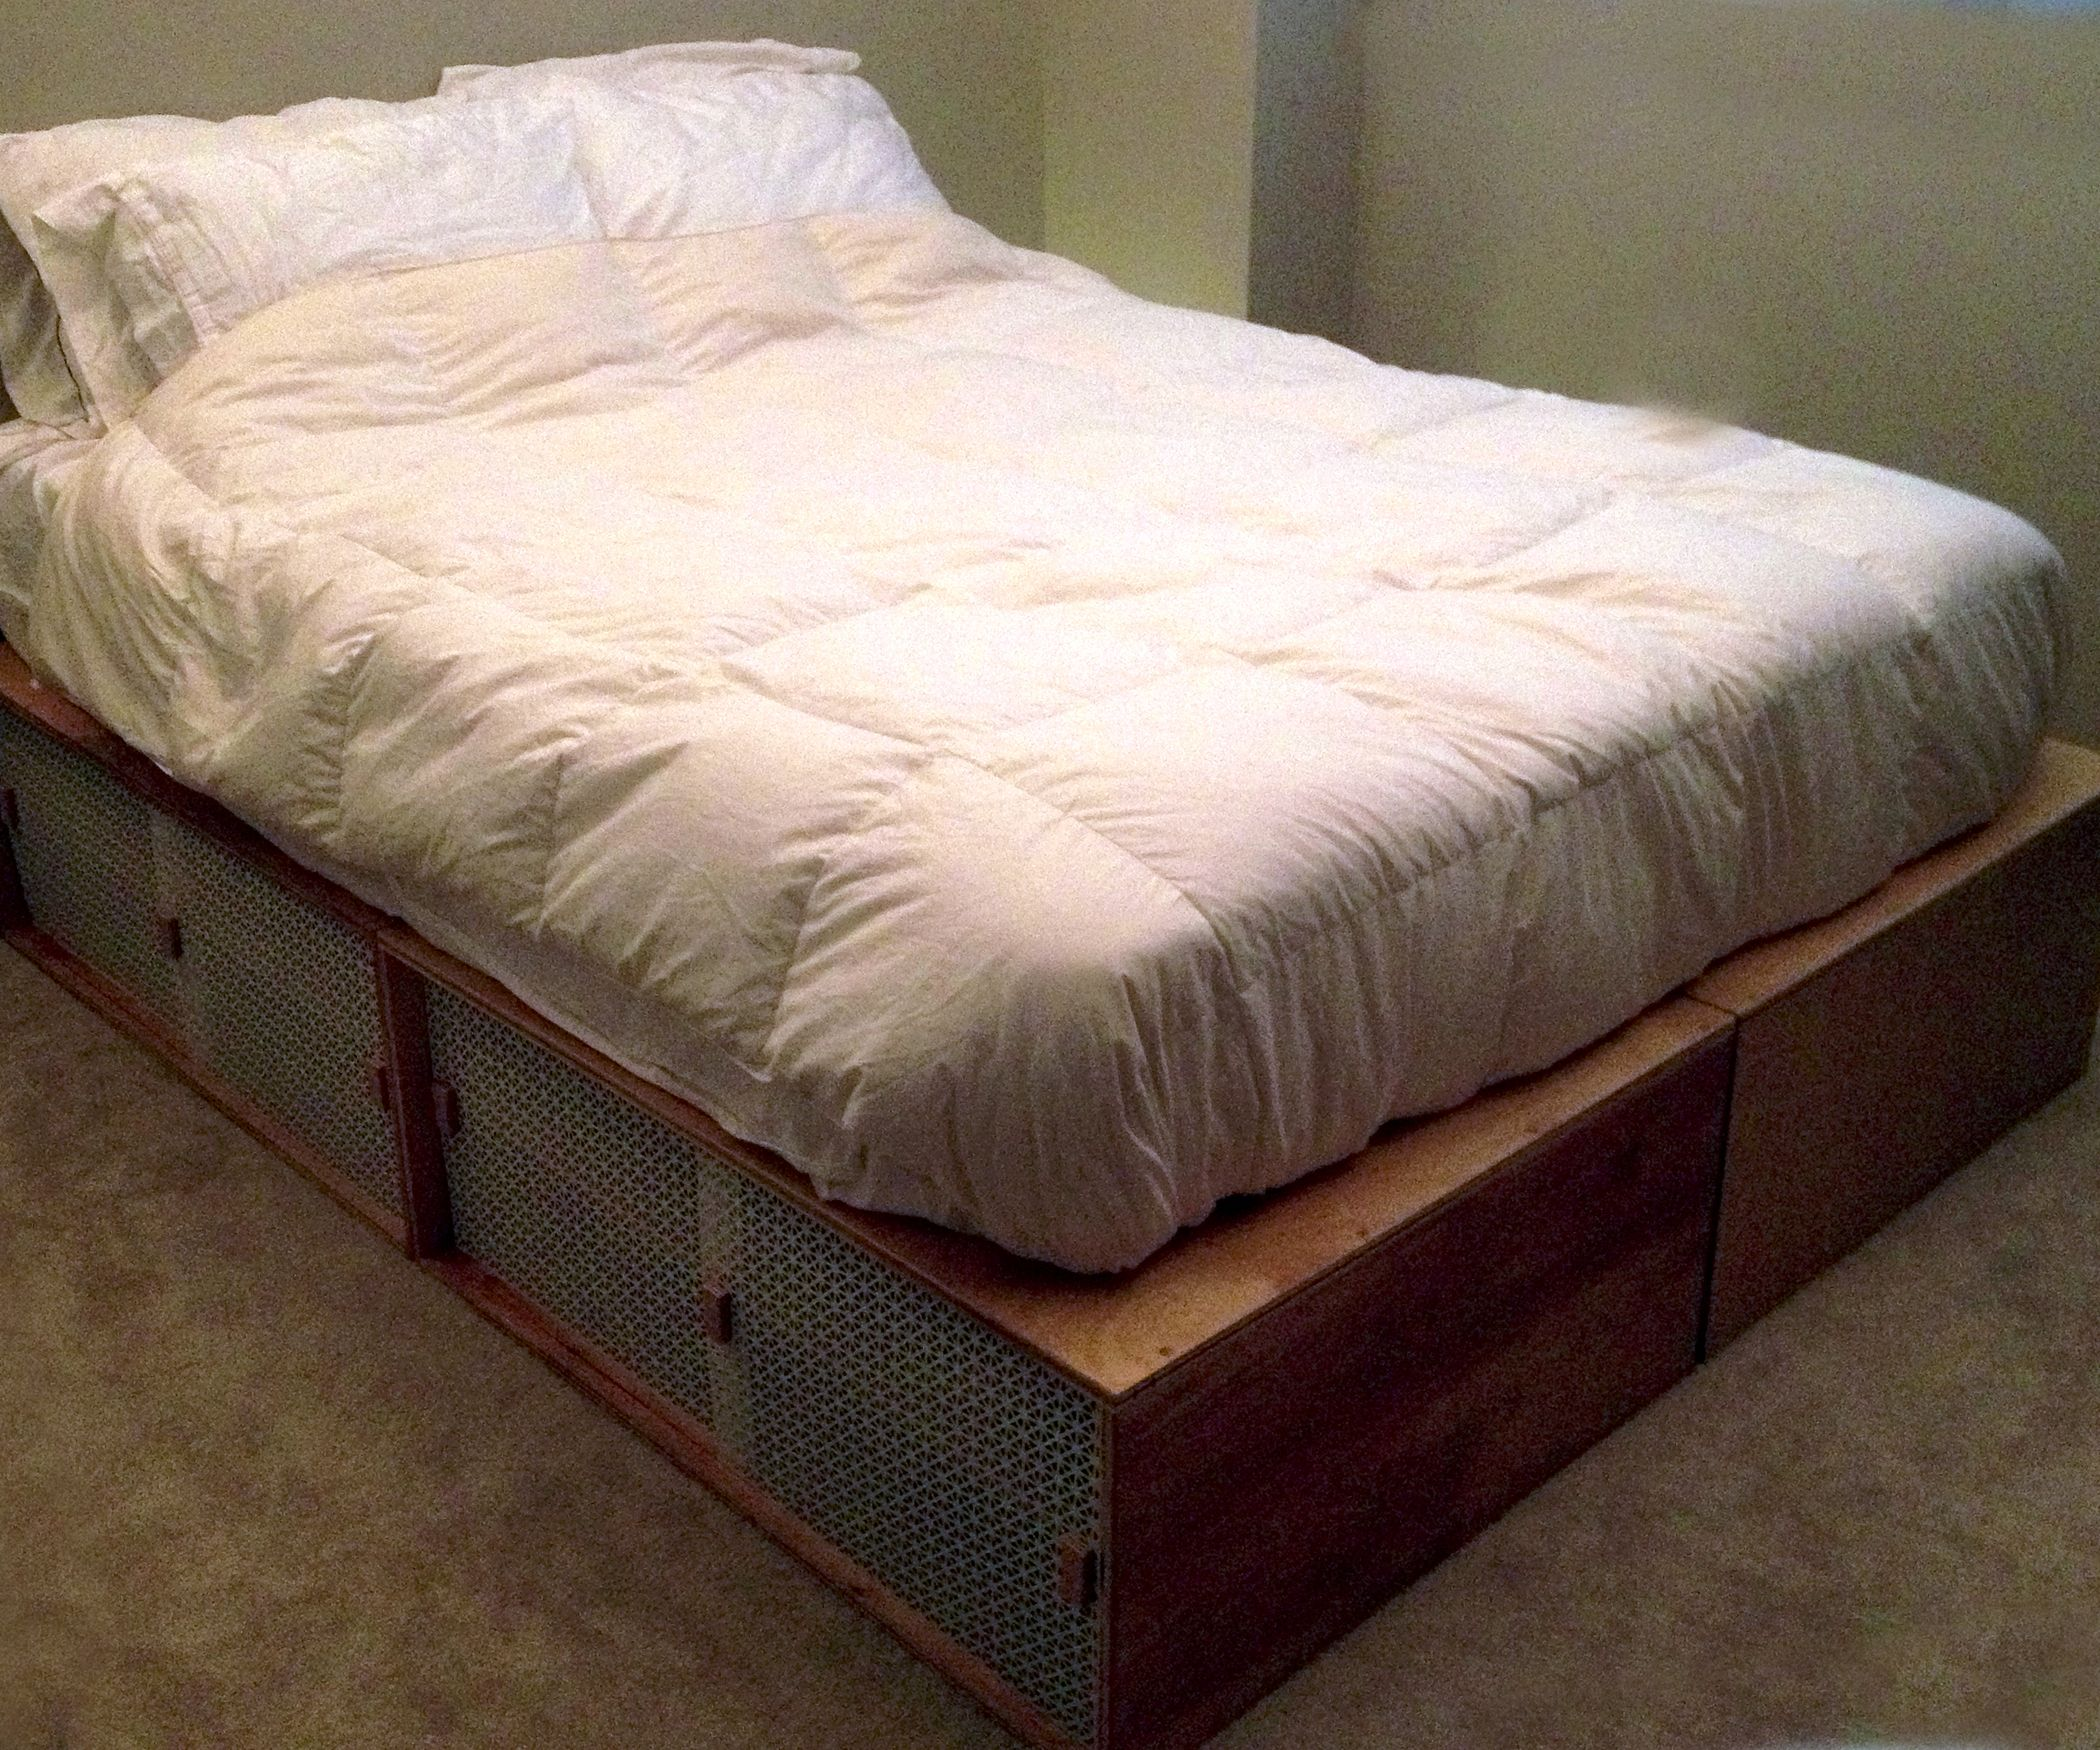 Box Bed Diy Storage Bed Box Bed Box Bed Frame